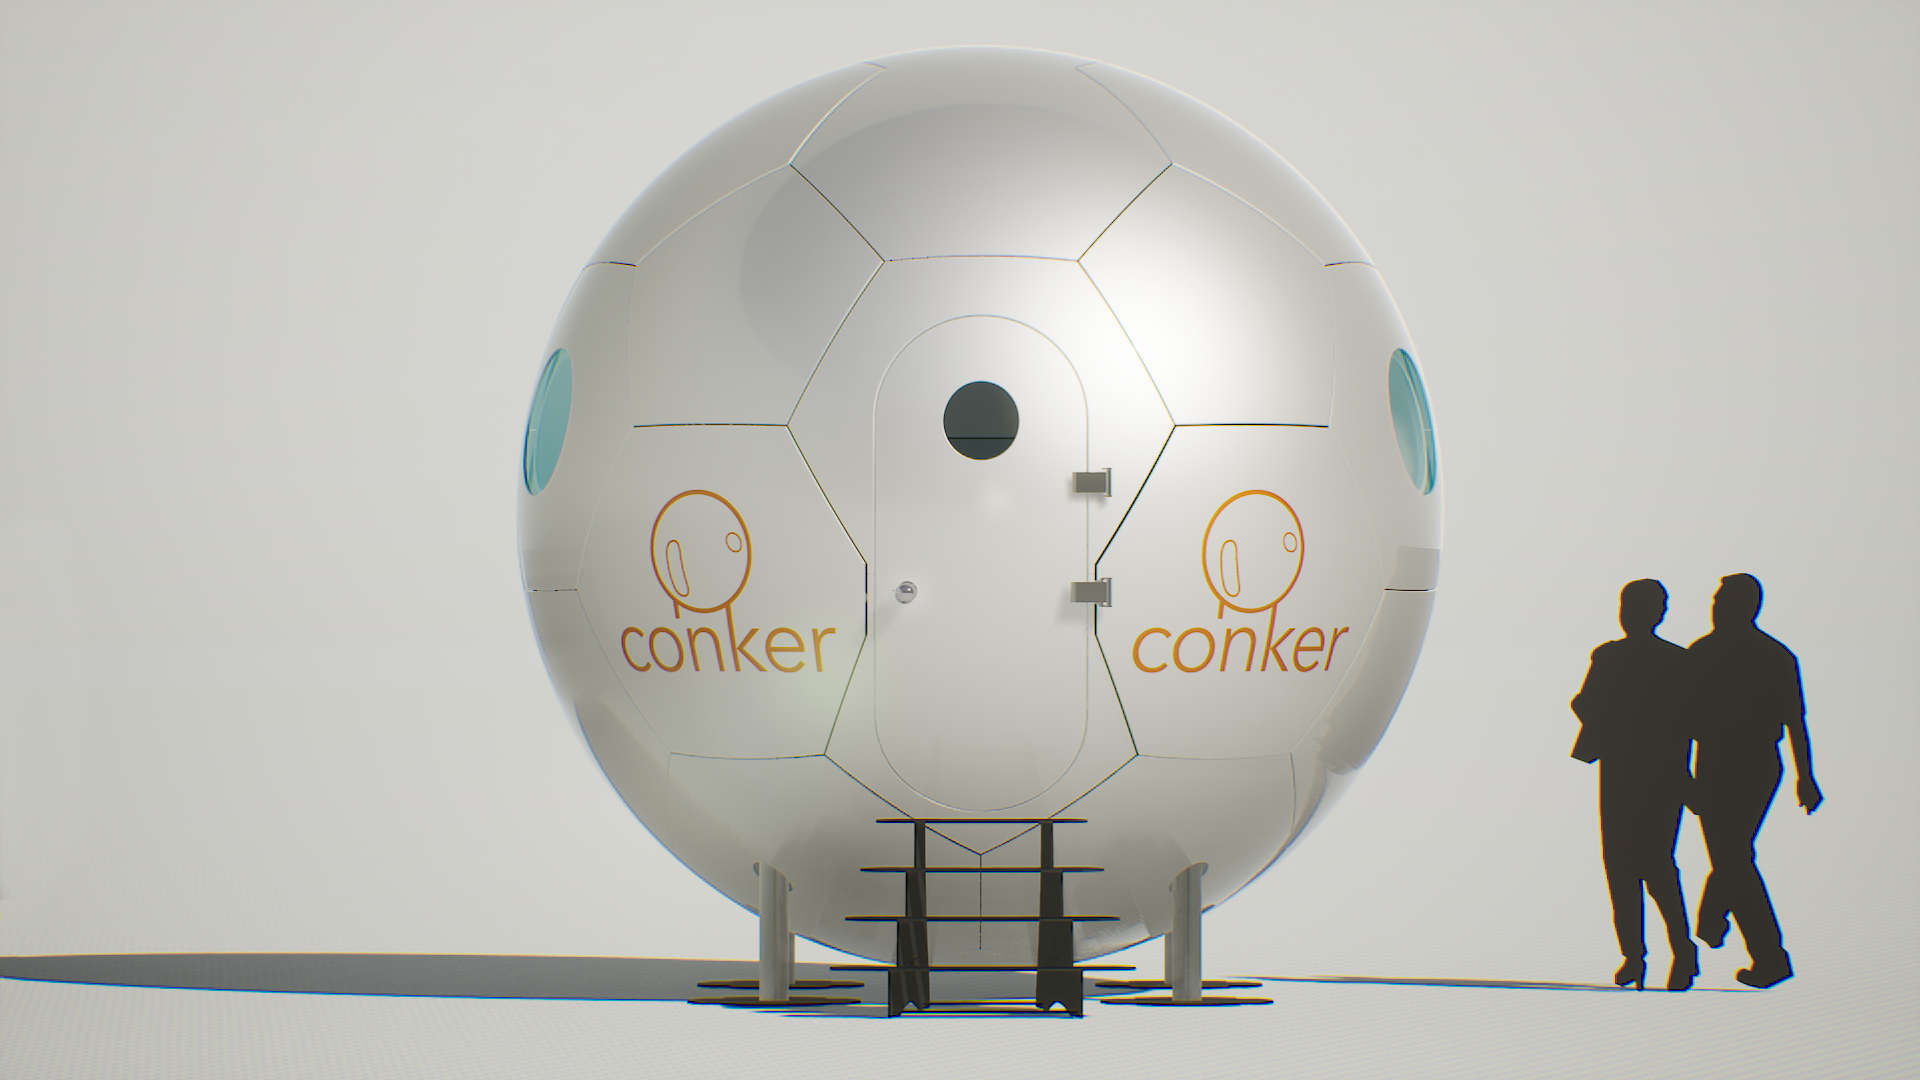 ConkerLving_Family_Conker_no Text